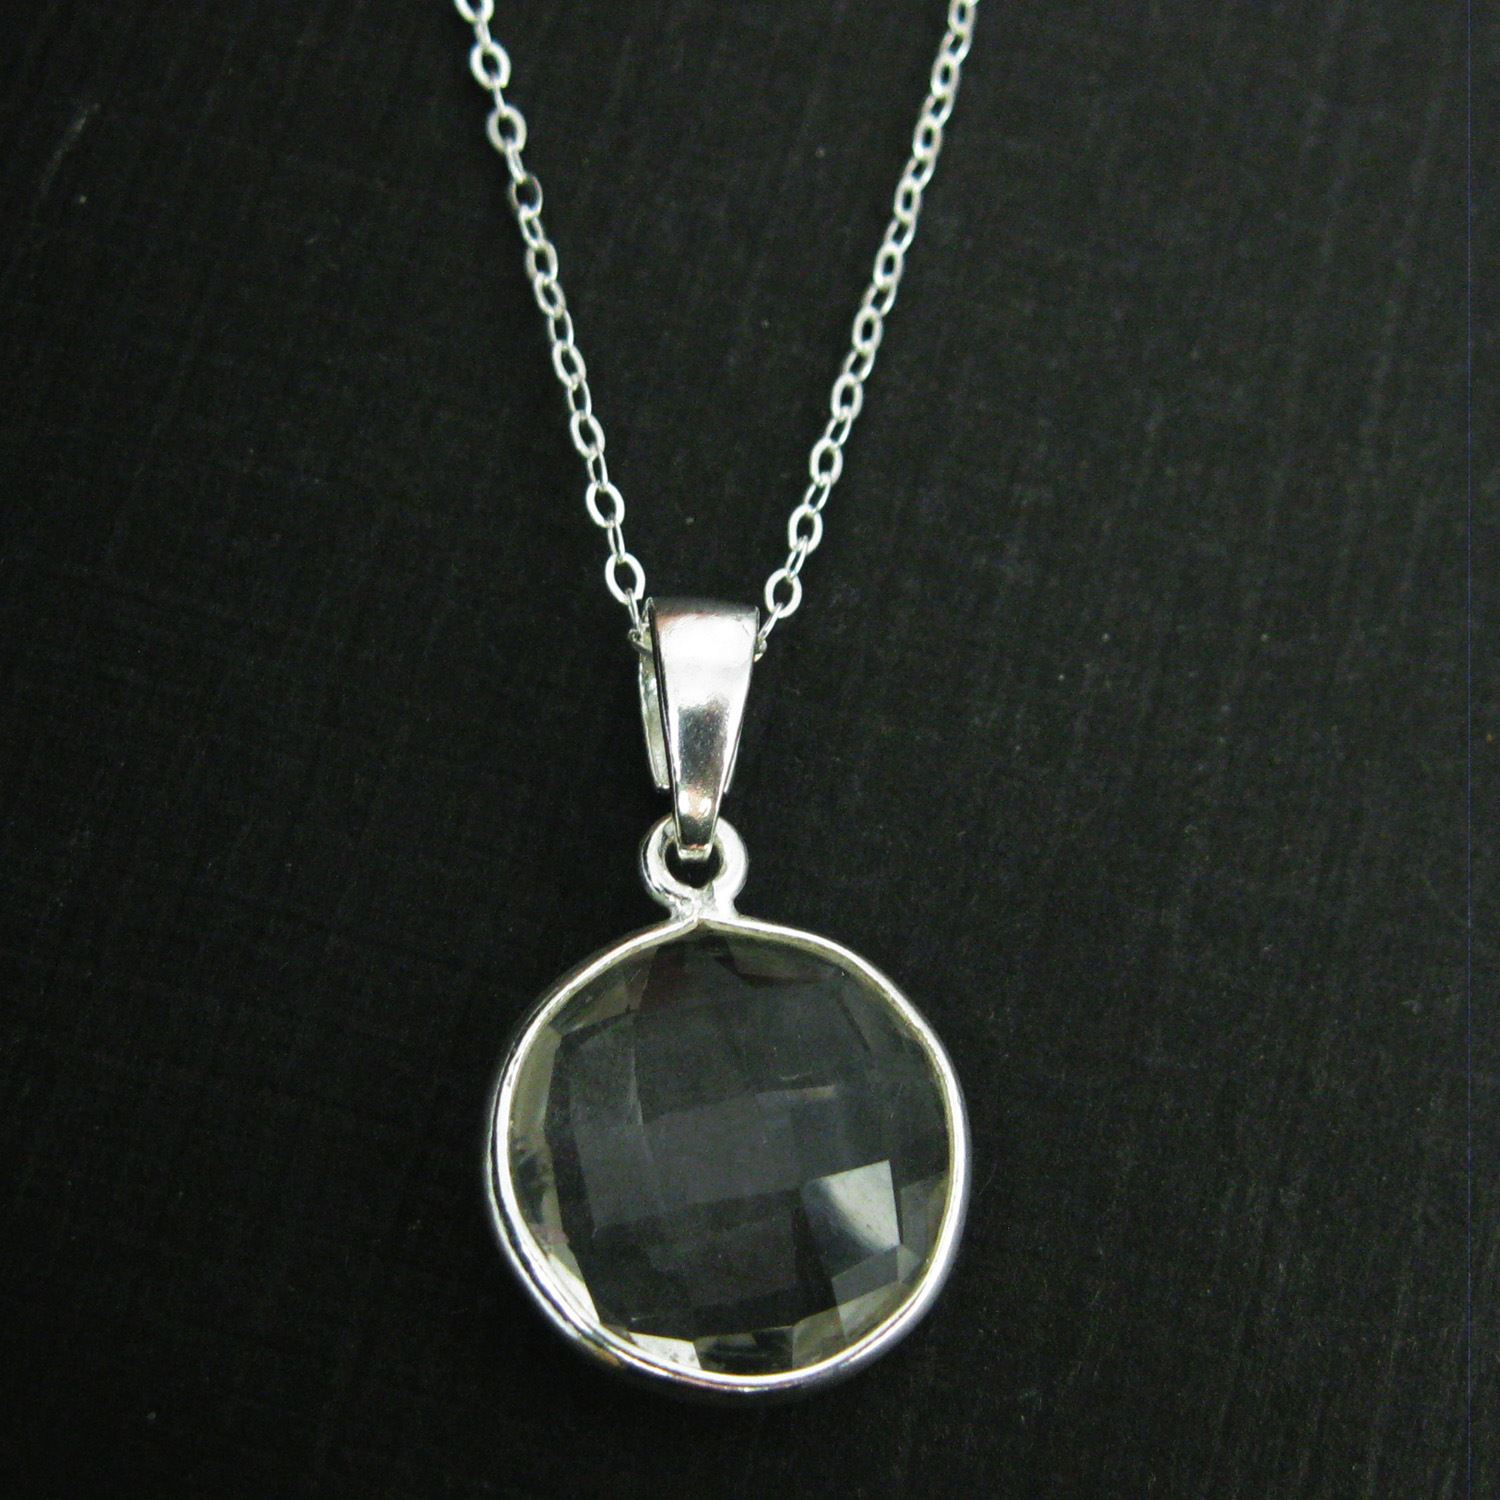 Bezel Gemstone Pendant with Bail - Sterling Silver Round Gem Pendant - Ready for Necklace - 24mm- Crystal Quartz